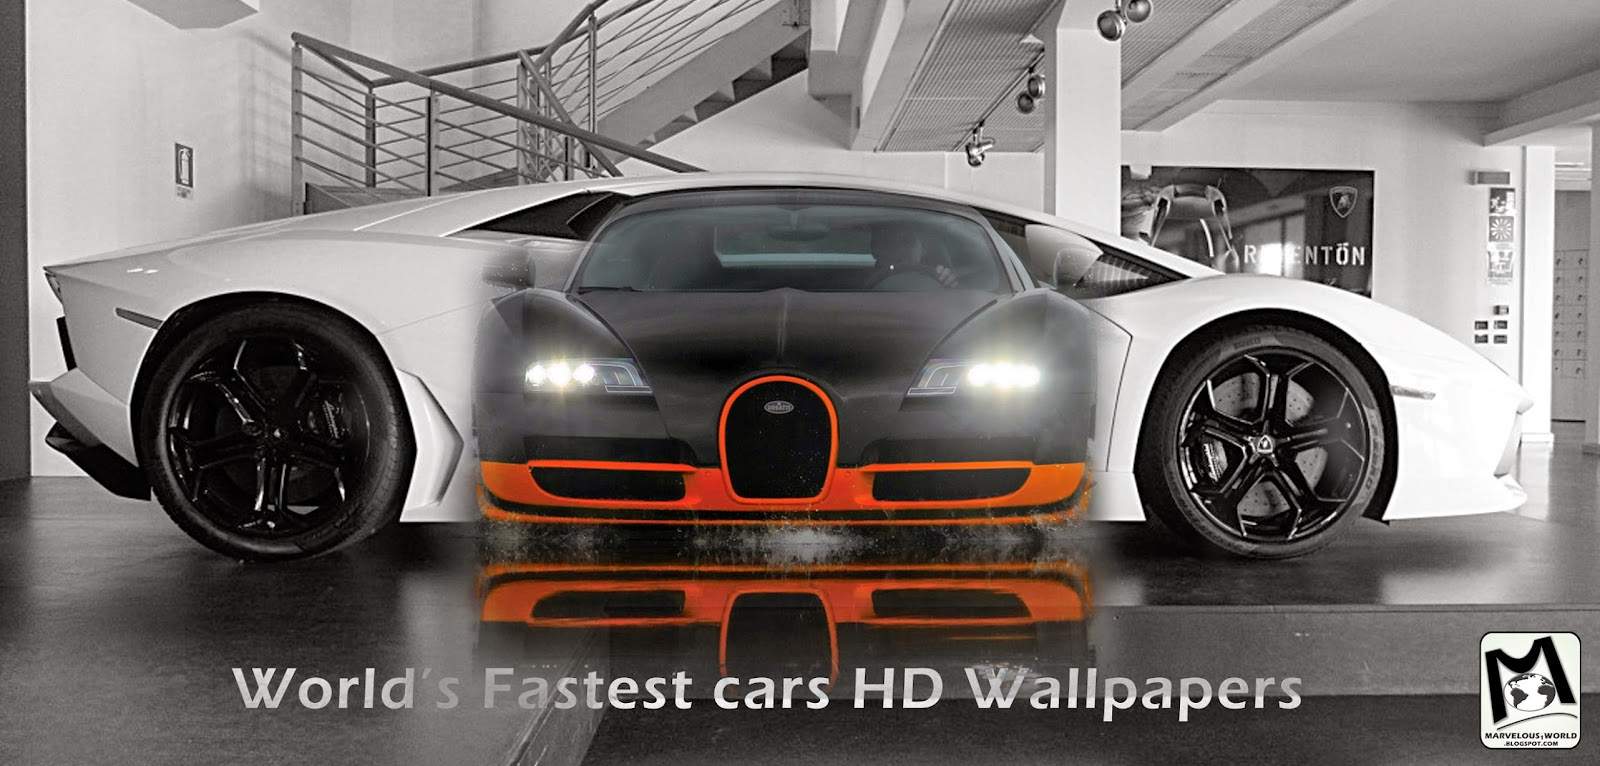 bugatti veyron production with Download Free Fastest Cars World Cool Wallpapers on Ferrari Enzo Front Wb 1280x960 further Peugeots New Fractal Coupe Hatch likewise Why The Bugatti Chiron Probably Wont Hit 300 Mph 1796418643 furthermore 2006 Koenigsegg Ccx Instrumented Test furthermore Bugatti Chiron Suv Rendered.